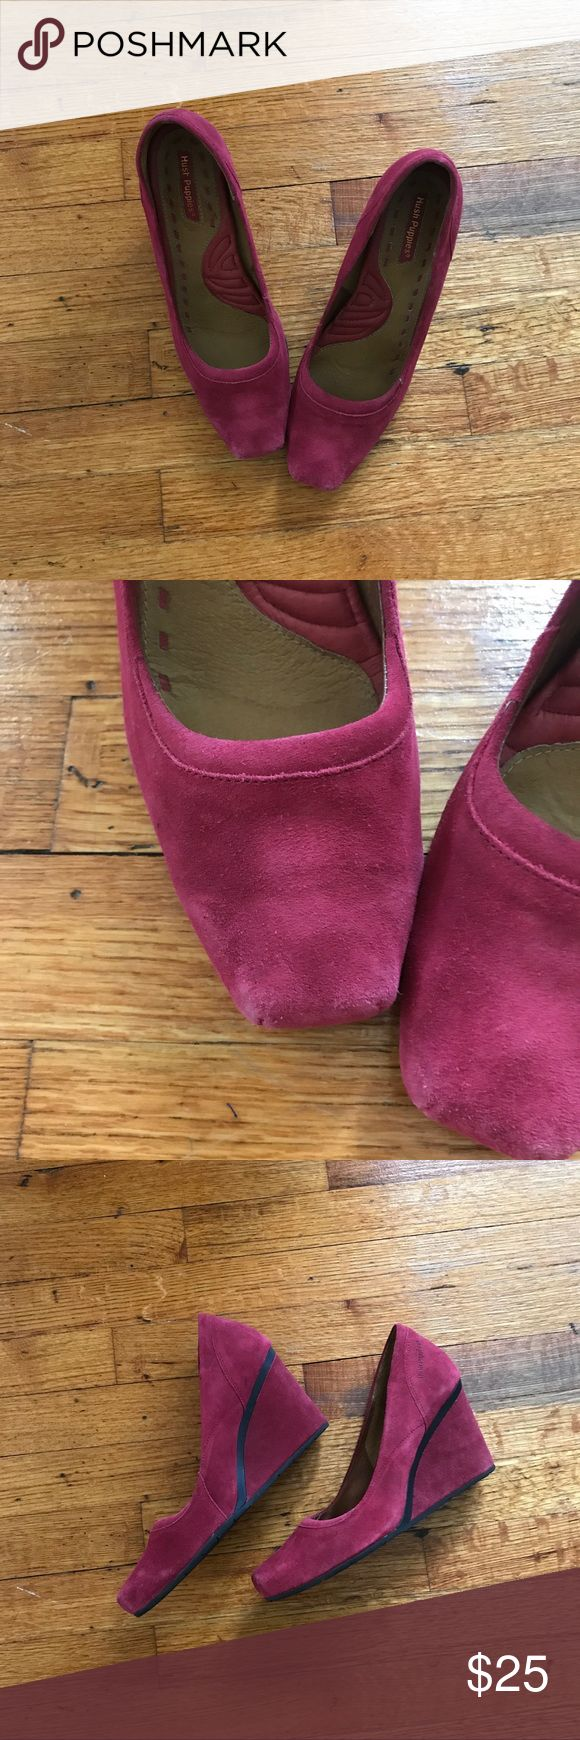 Hush Puppies | Magenta Wedge Heels size 10 Whoa! Magenta is killer gorgeous! These suede wedge heels with a square toe are just what you're looking for this fall! 🍁 Slip these comfortable stylish heels on! There is some additional wear behind the right heel, likely from driving:) *Preloved items may show signs of wear. See all pictures.* Hush Puppies Shoes Wedges